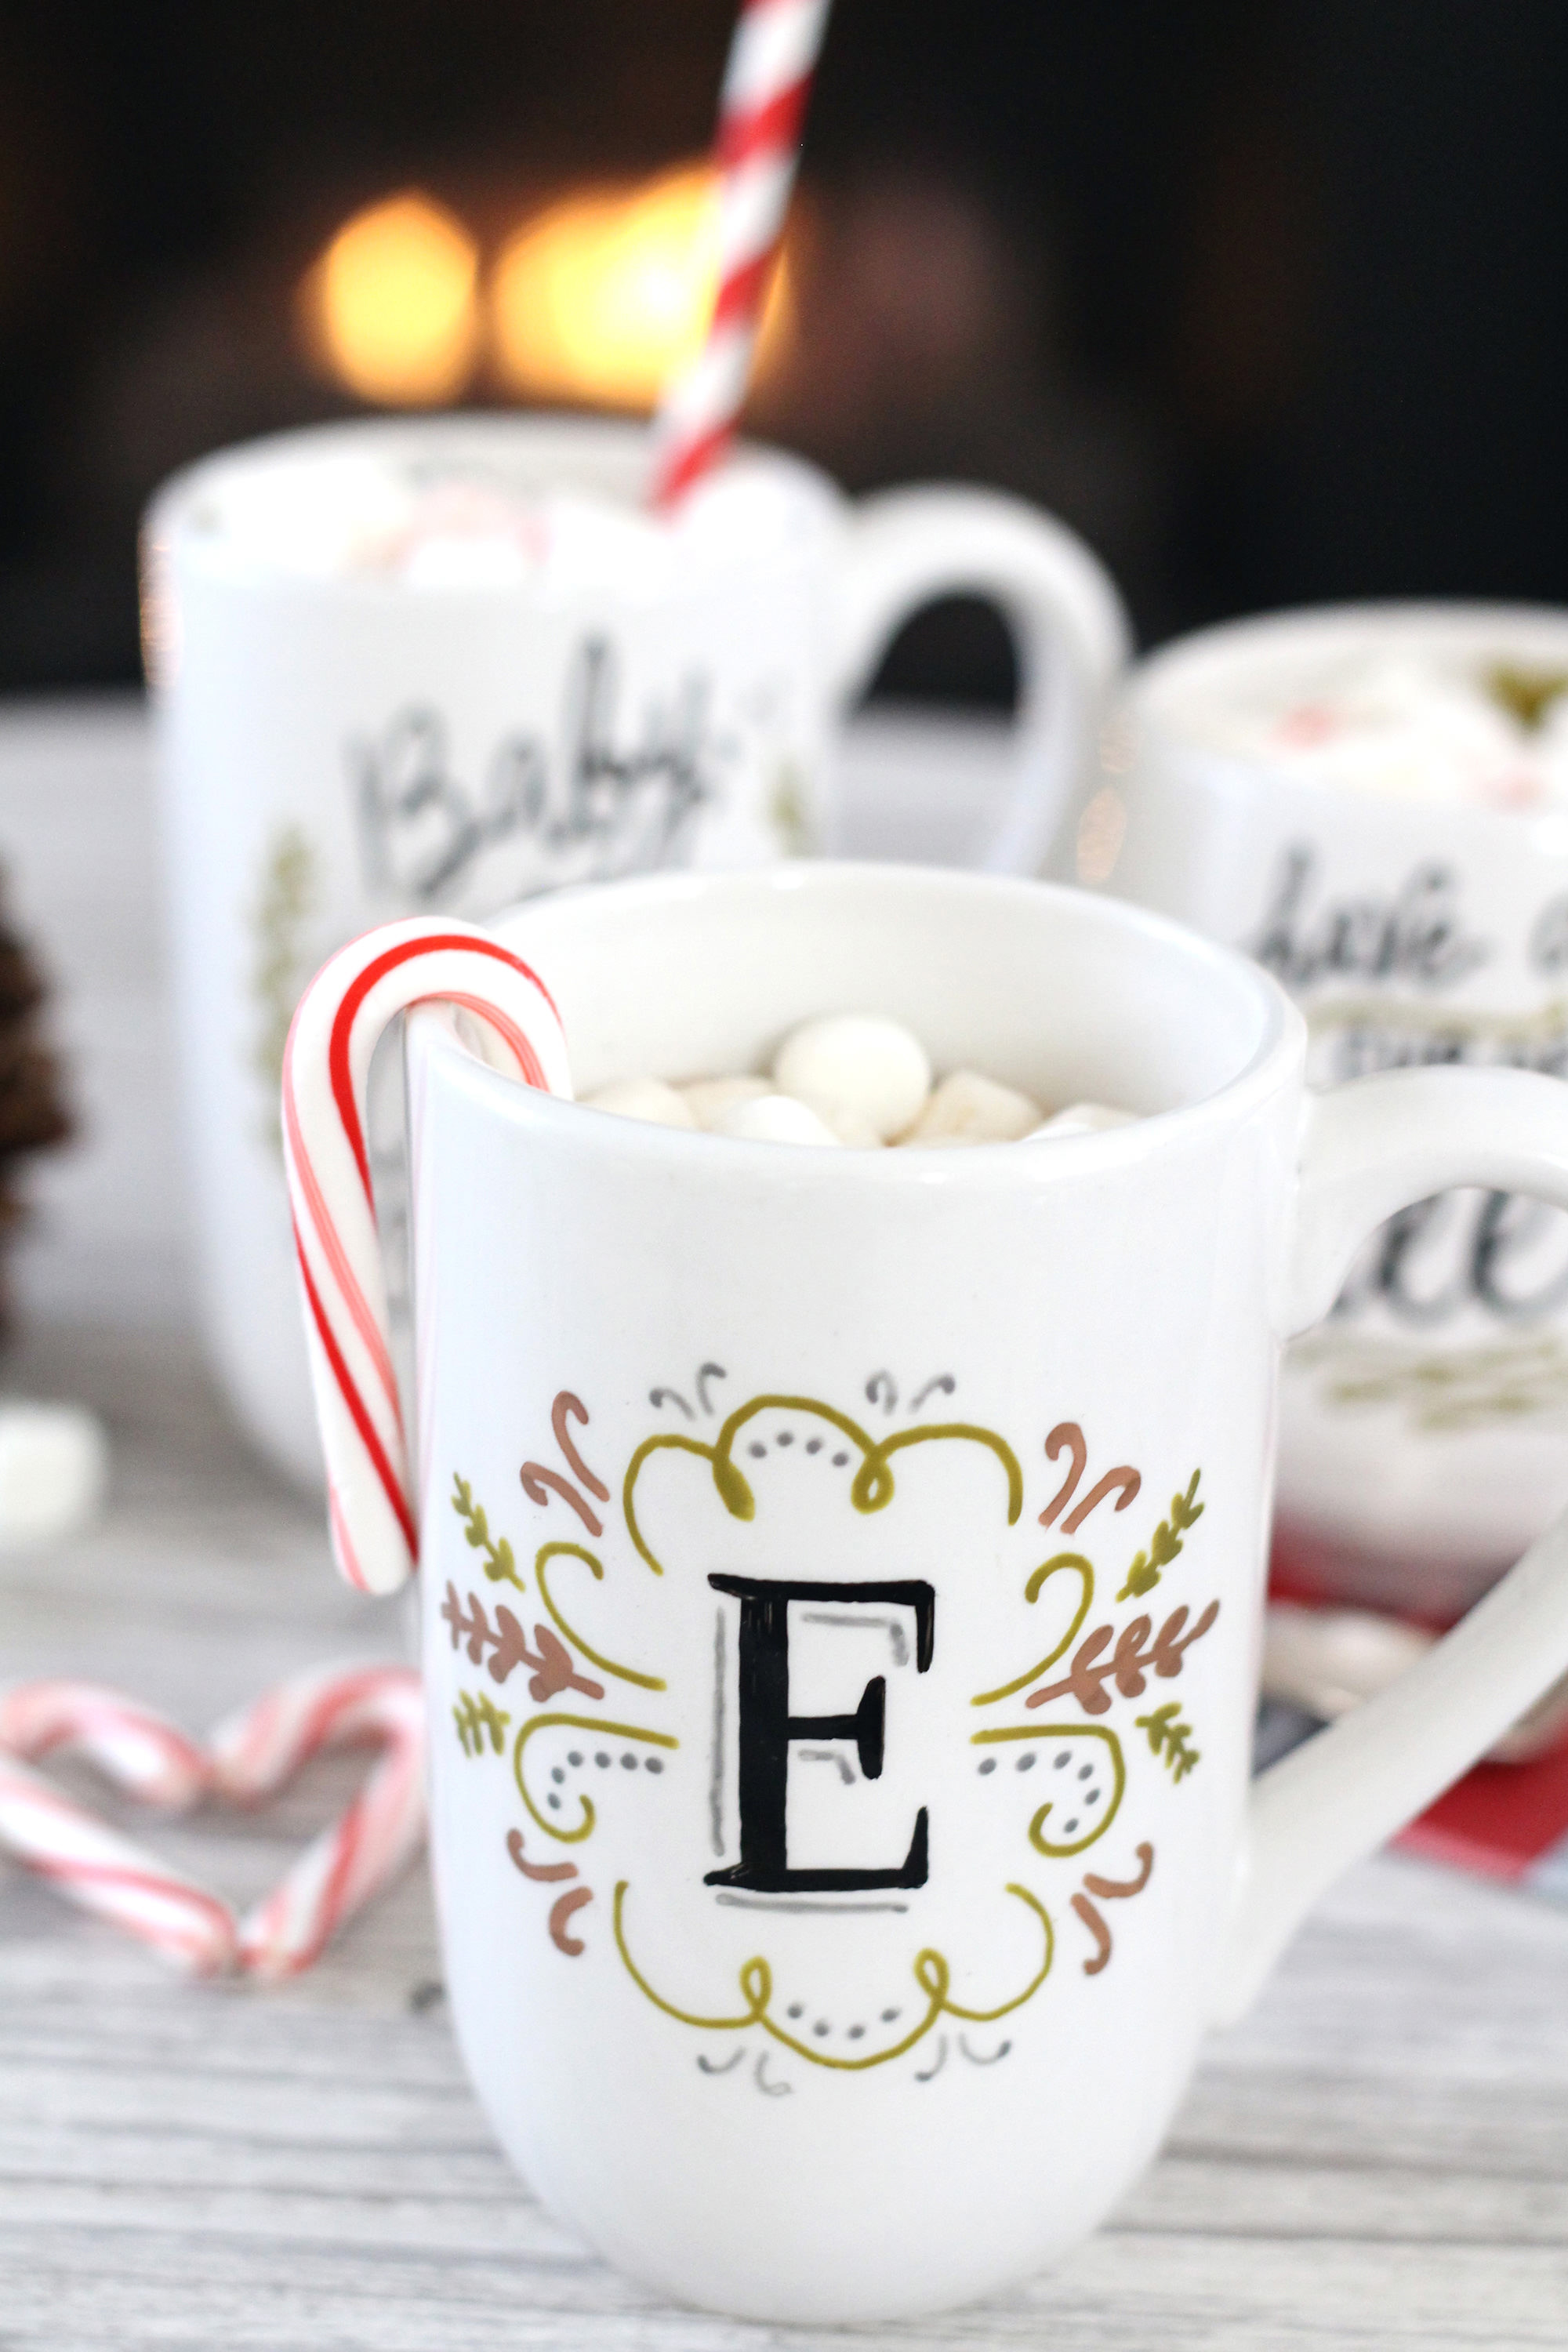 Best ideas about DIY Personalized Mugs . Save or Pin DIY Mug Gifts Using PaintedByMe Bake At Home Ceramics Now.